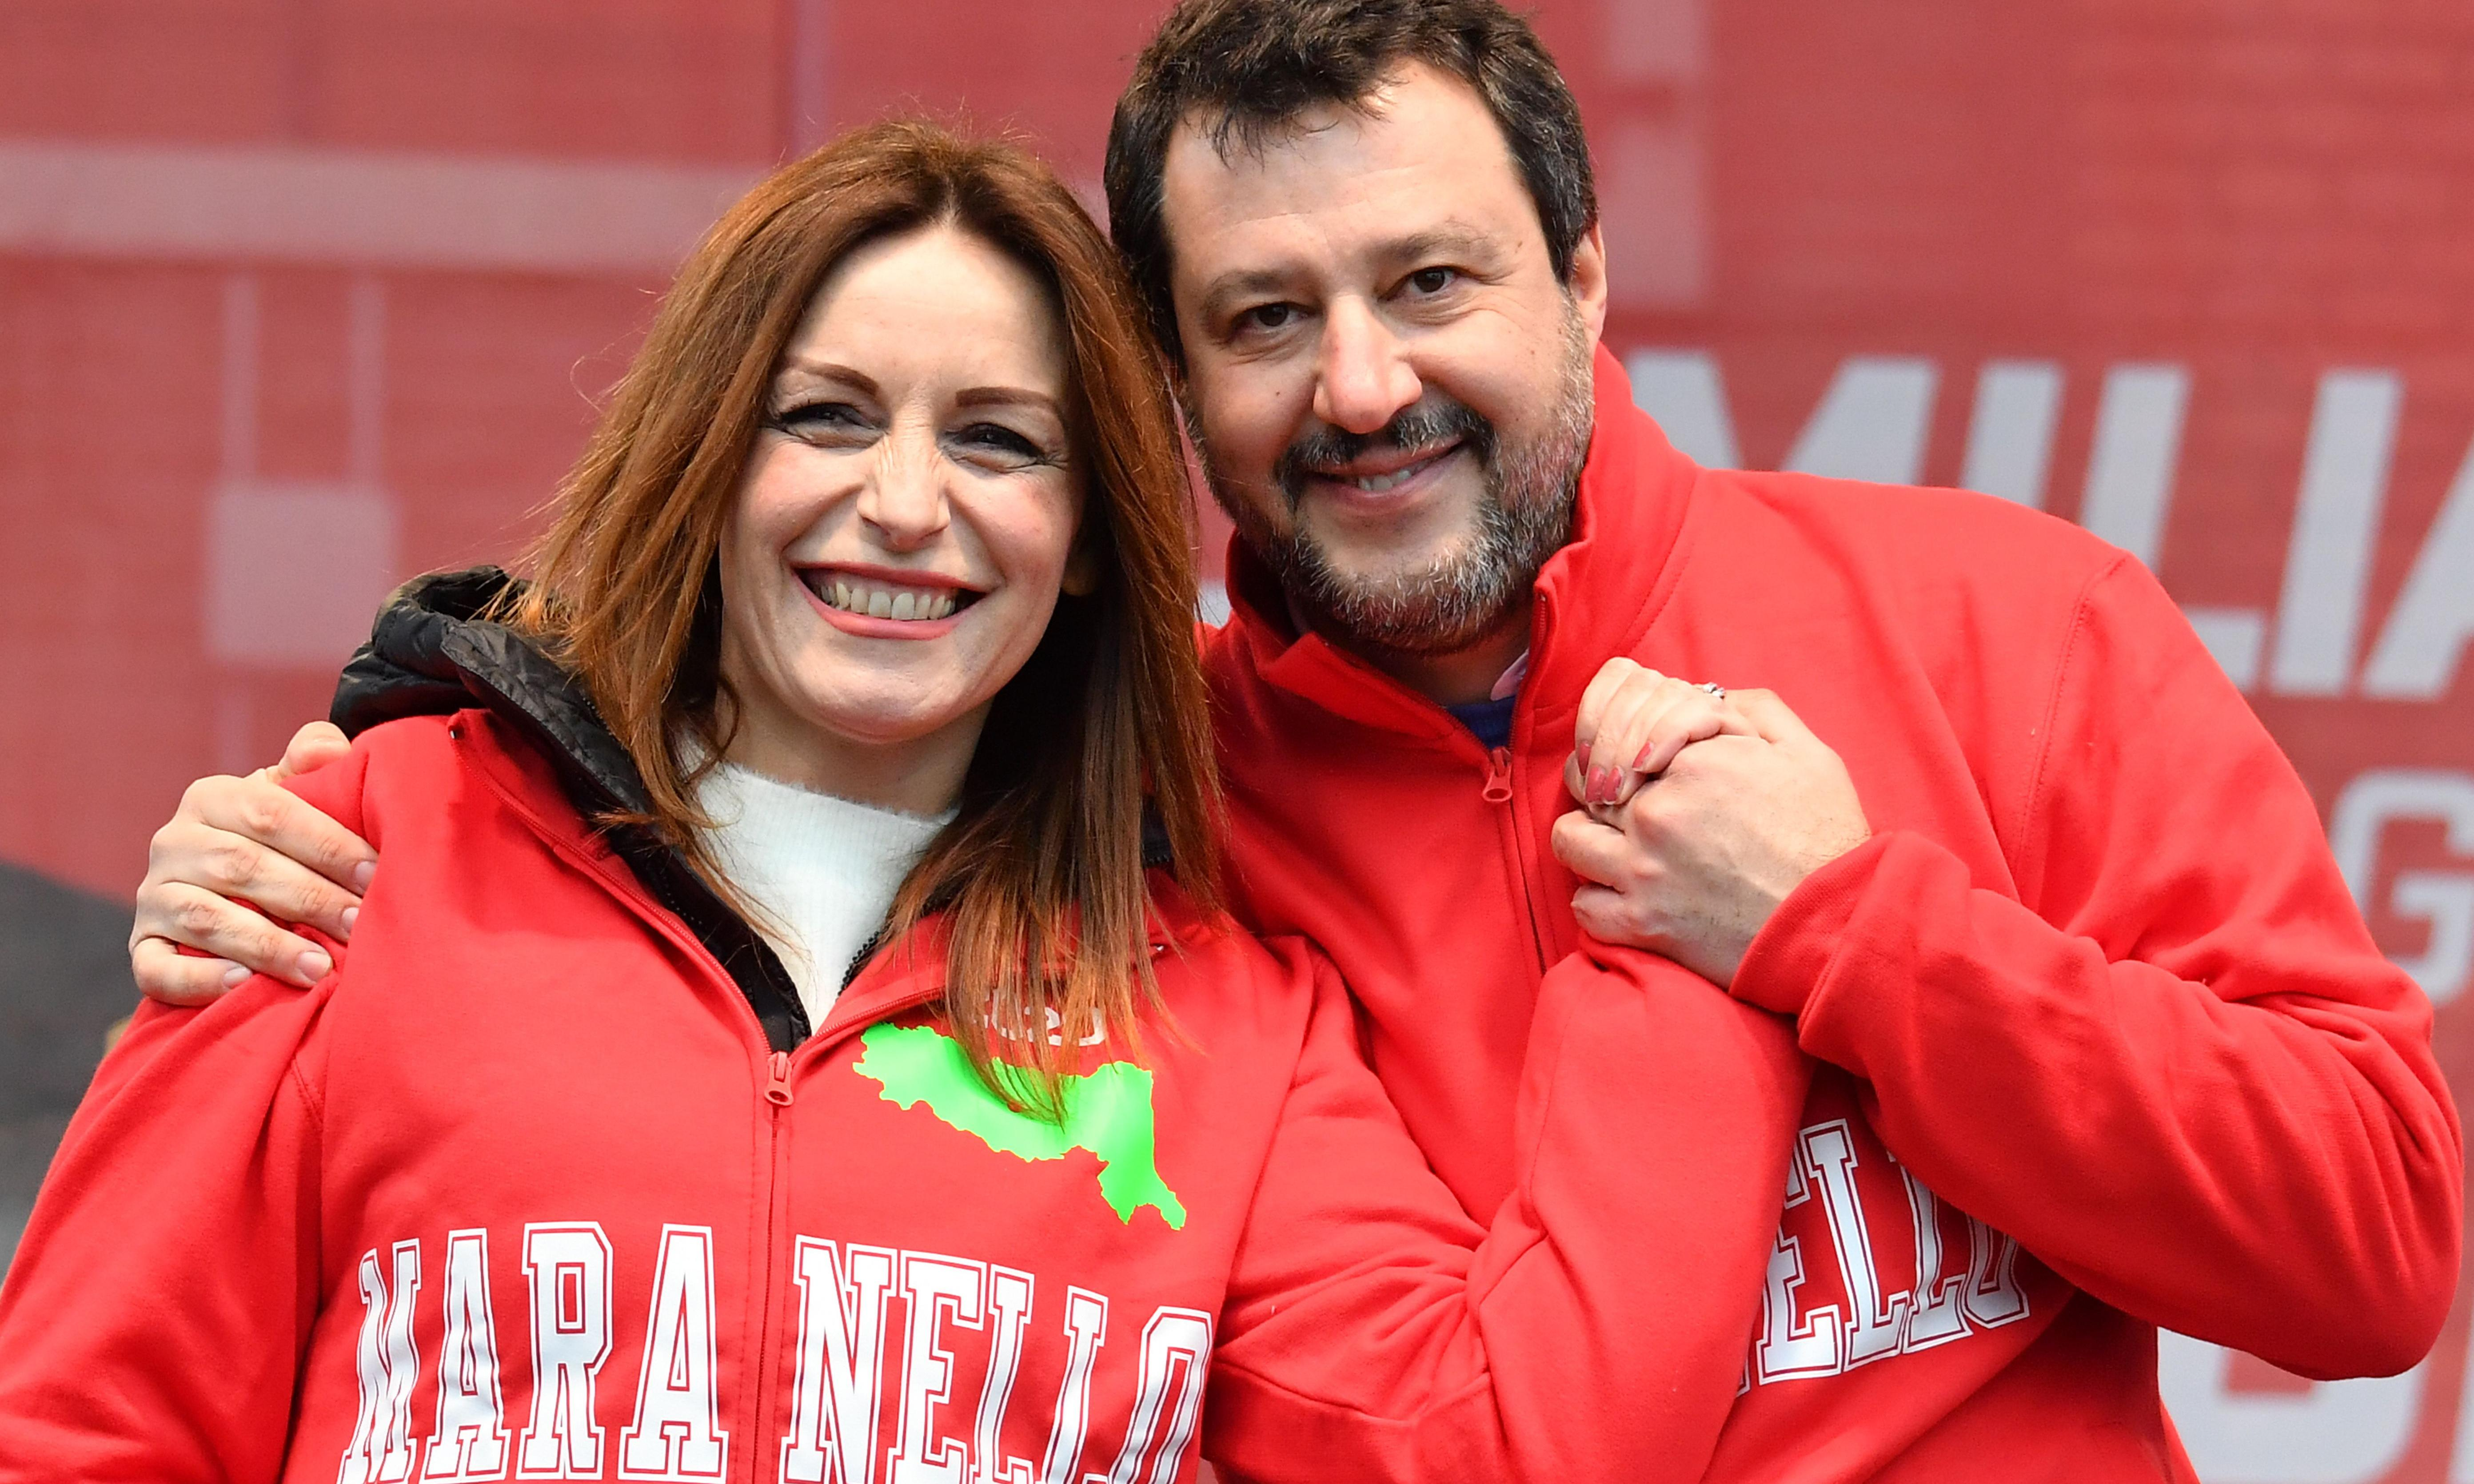 Salvini's League pulls out all the stops to win Italy's rich leftwing stronghold